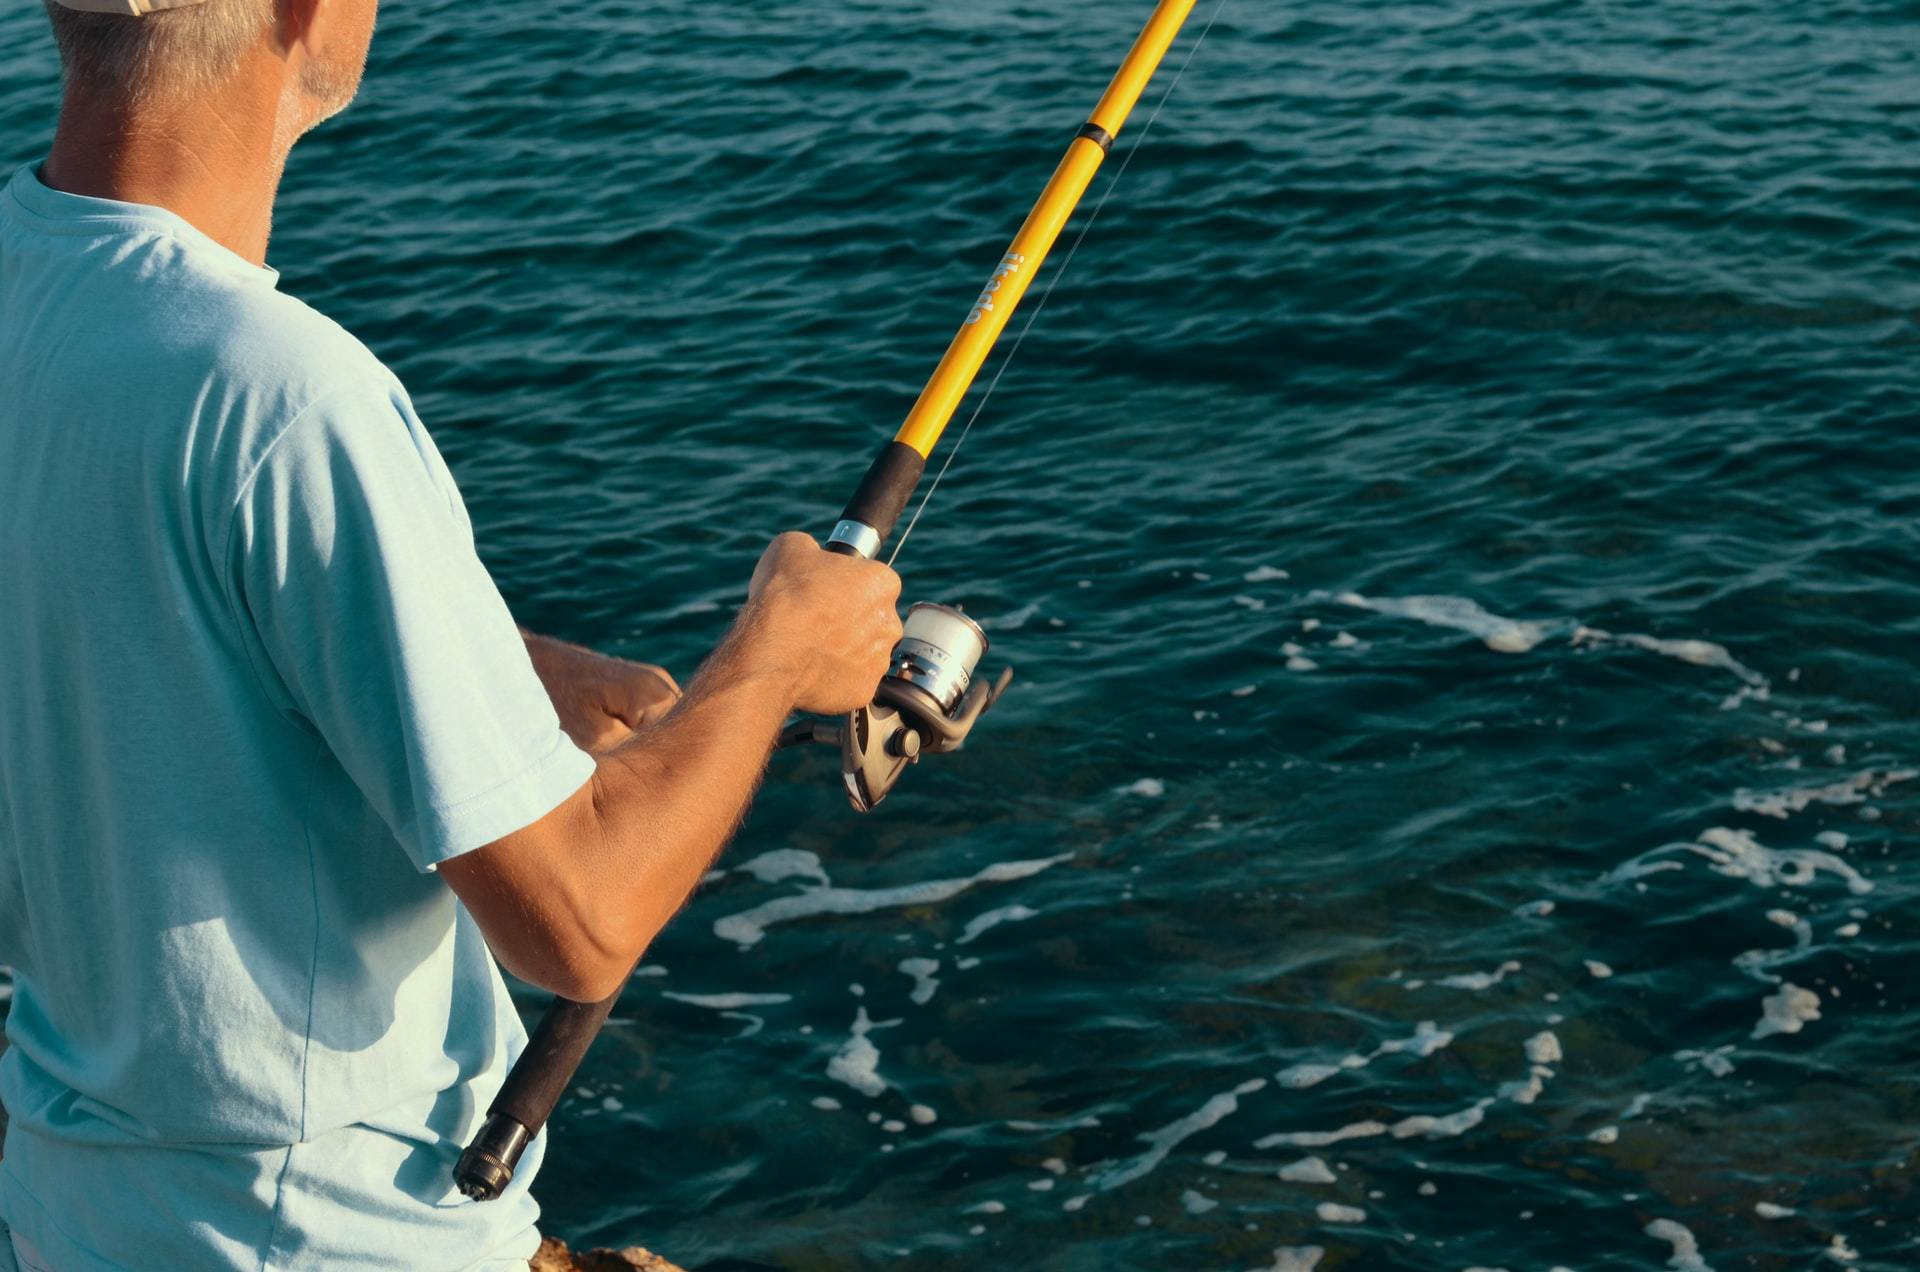 A fisherman is only as prepared as their tackle box